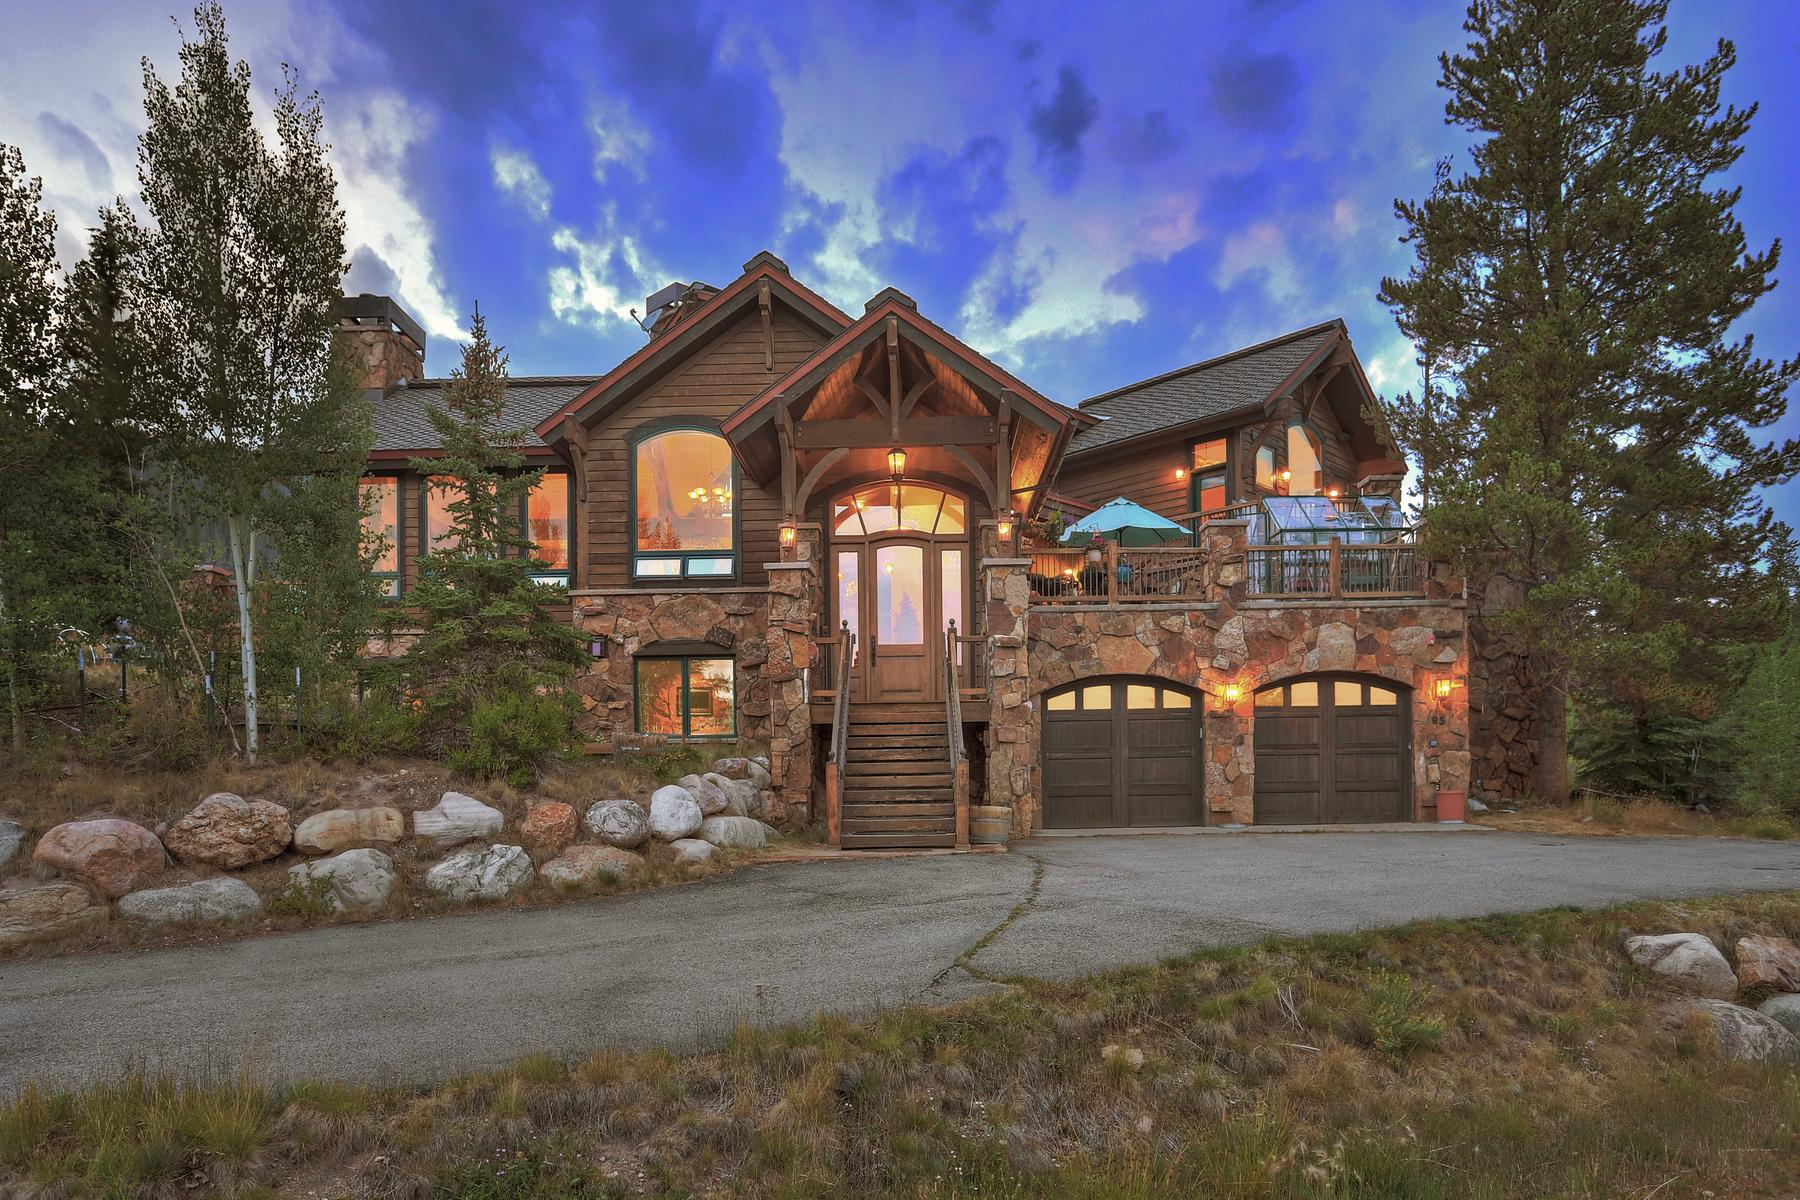 Single Family Home for Active at Character Rich Custom Home on One Acre 95 Silver Dollar Drive Breckenridge, Colorado 80424 United States